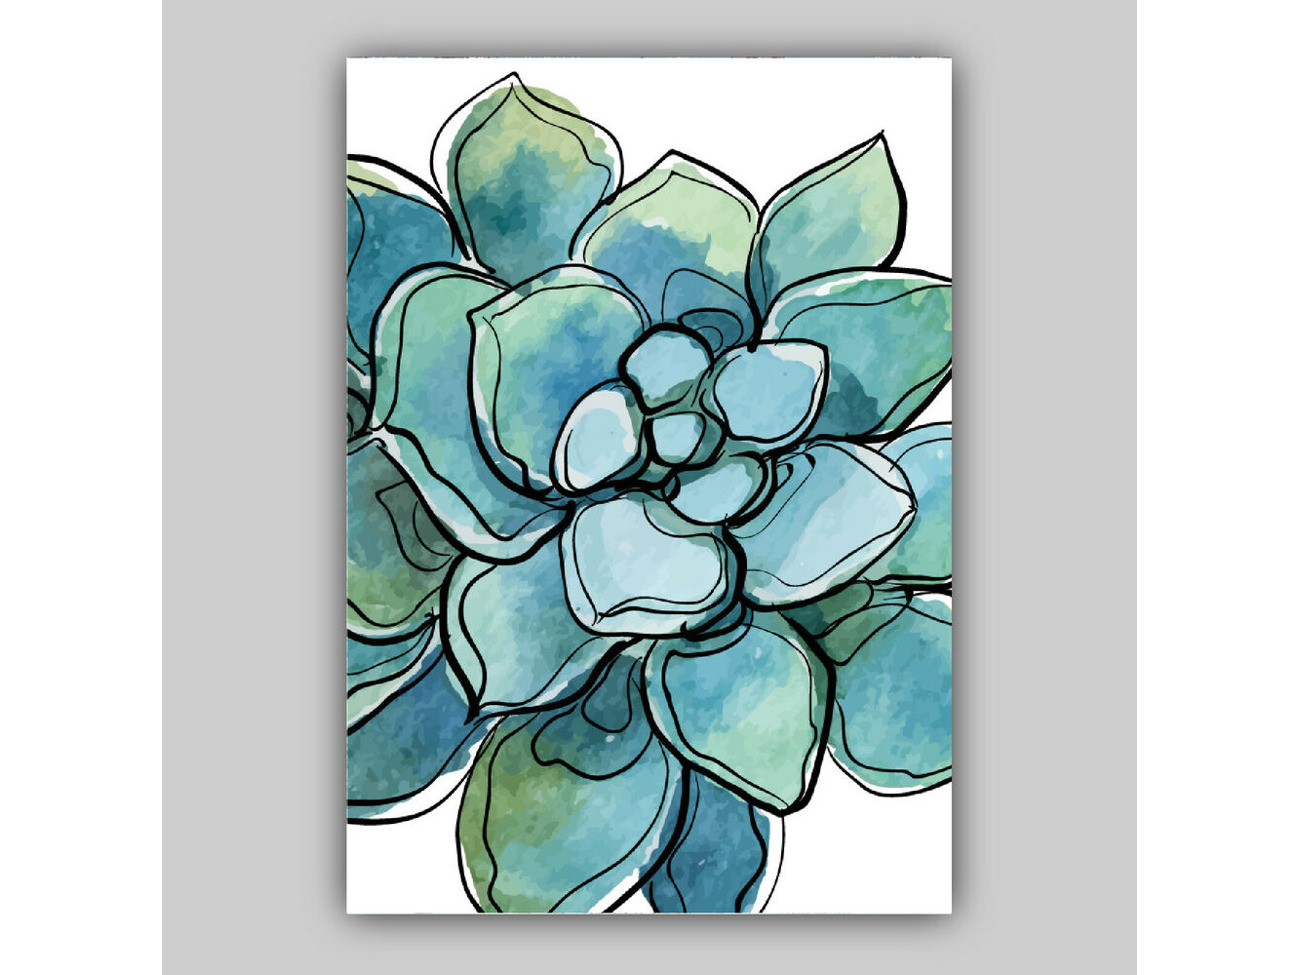 Rent Set Of 3 Watercolour Cactus Succulents Blue Green Orange Floral Art Prints Only In London Rent For 0 00 Day